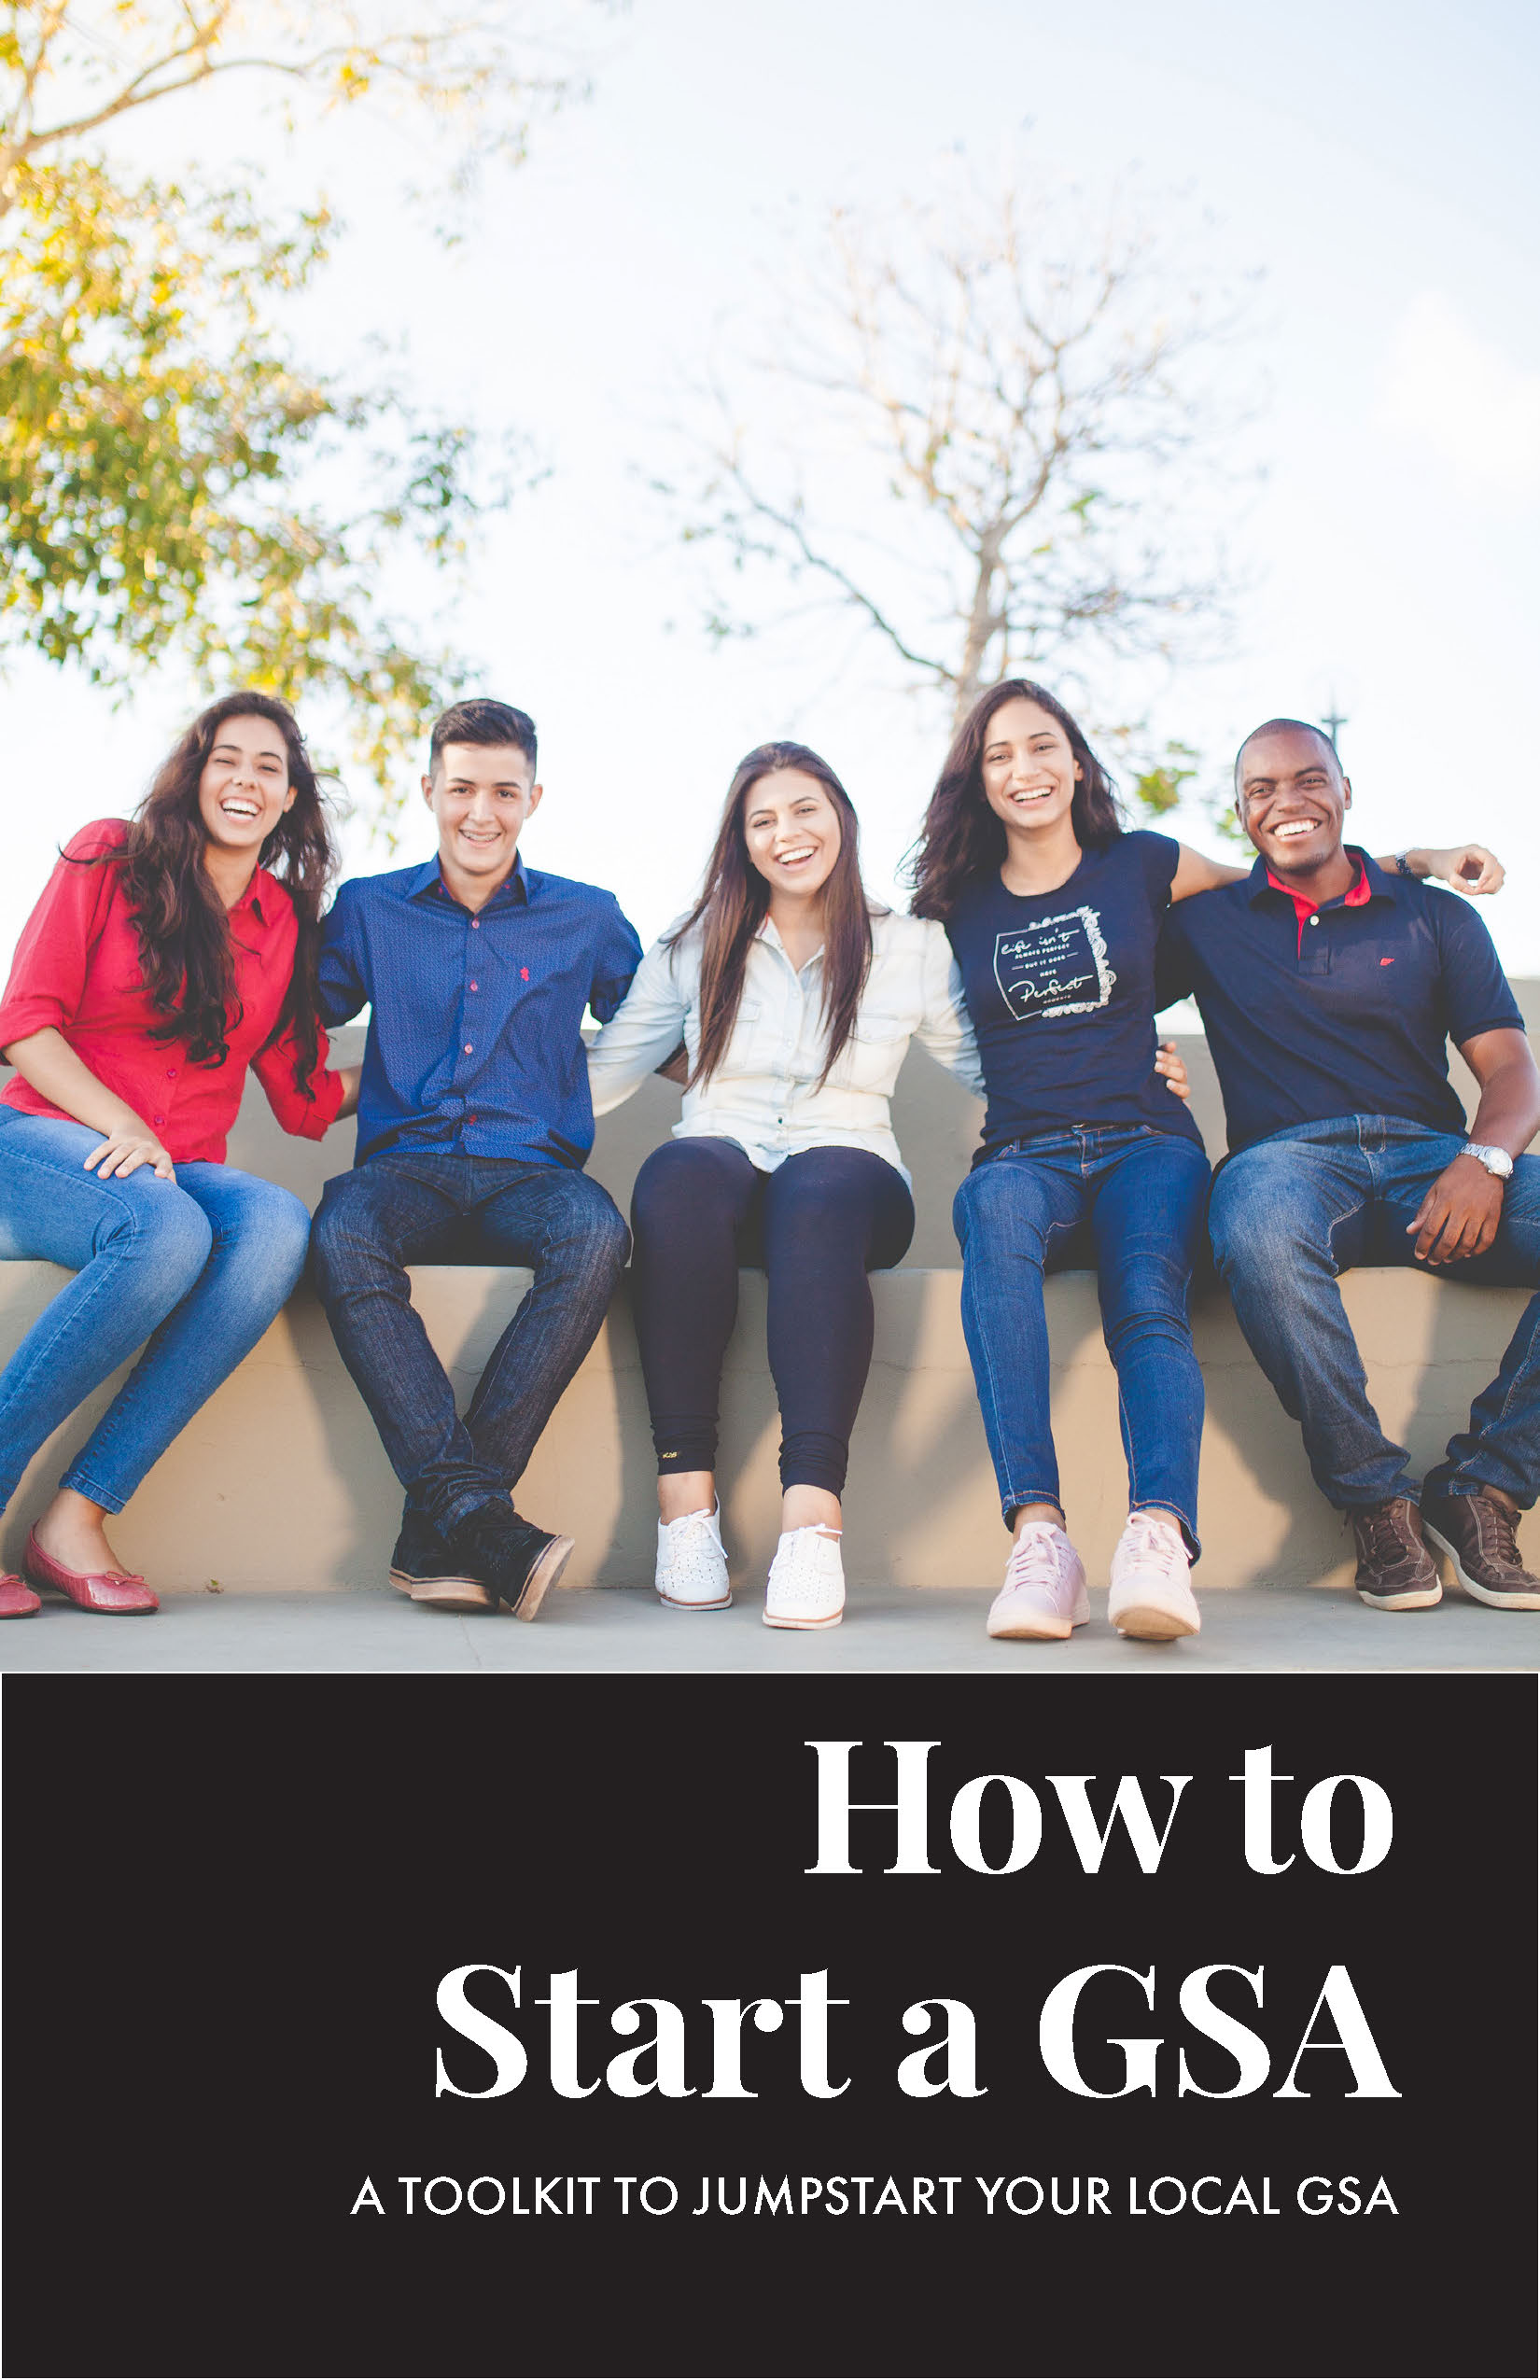 Copy of How to Start a GSA